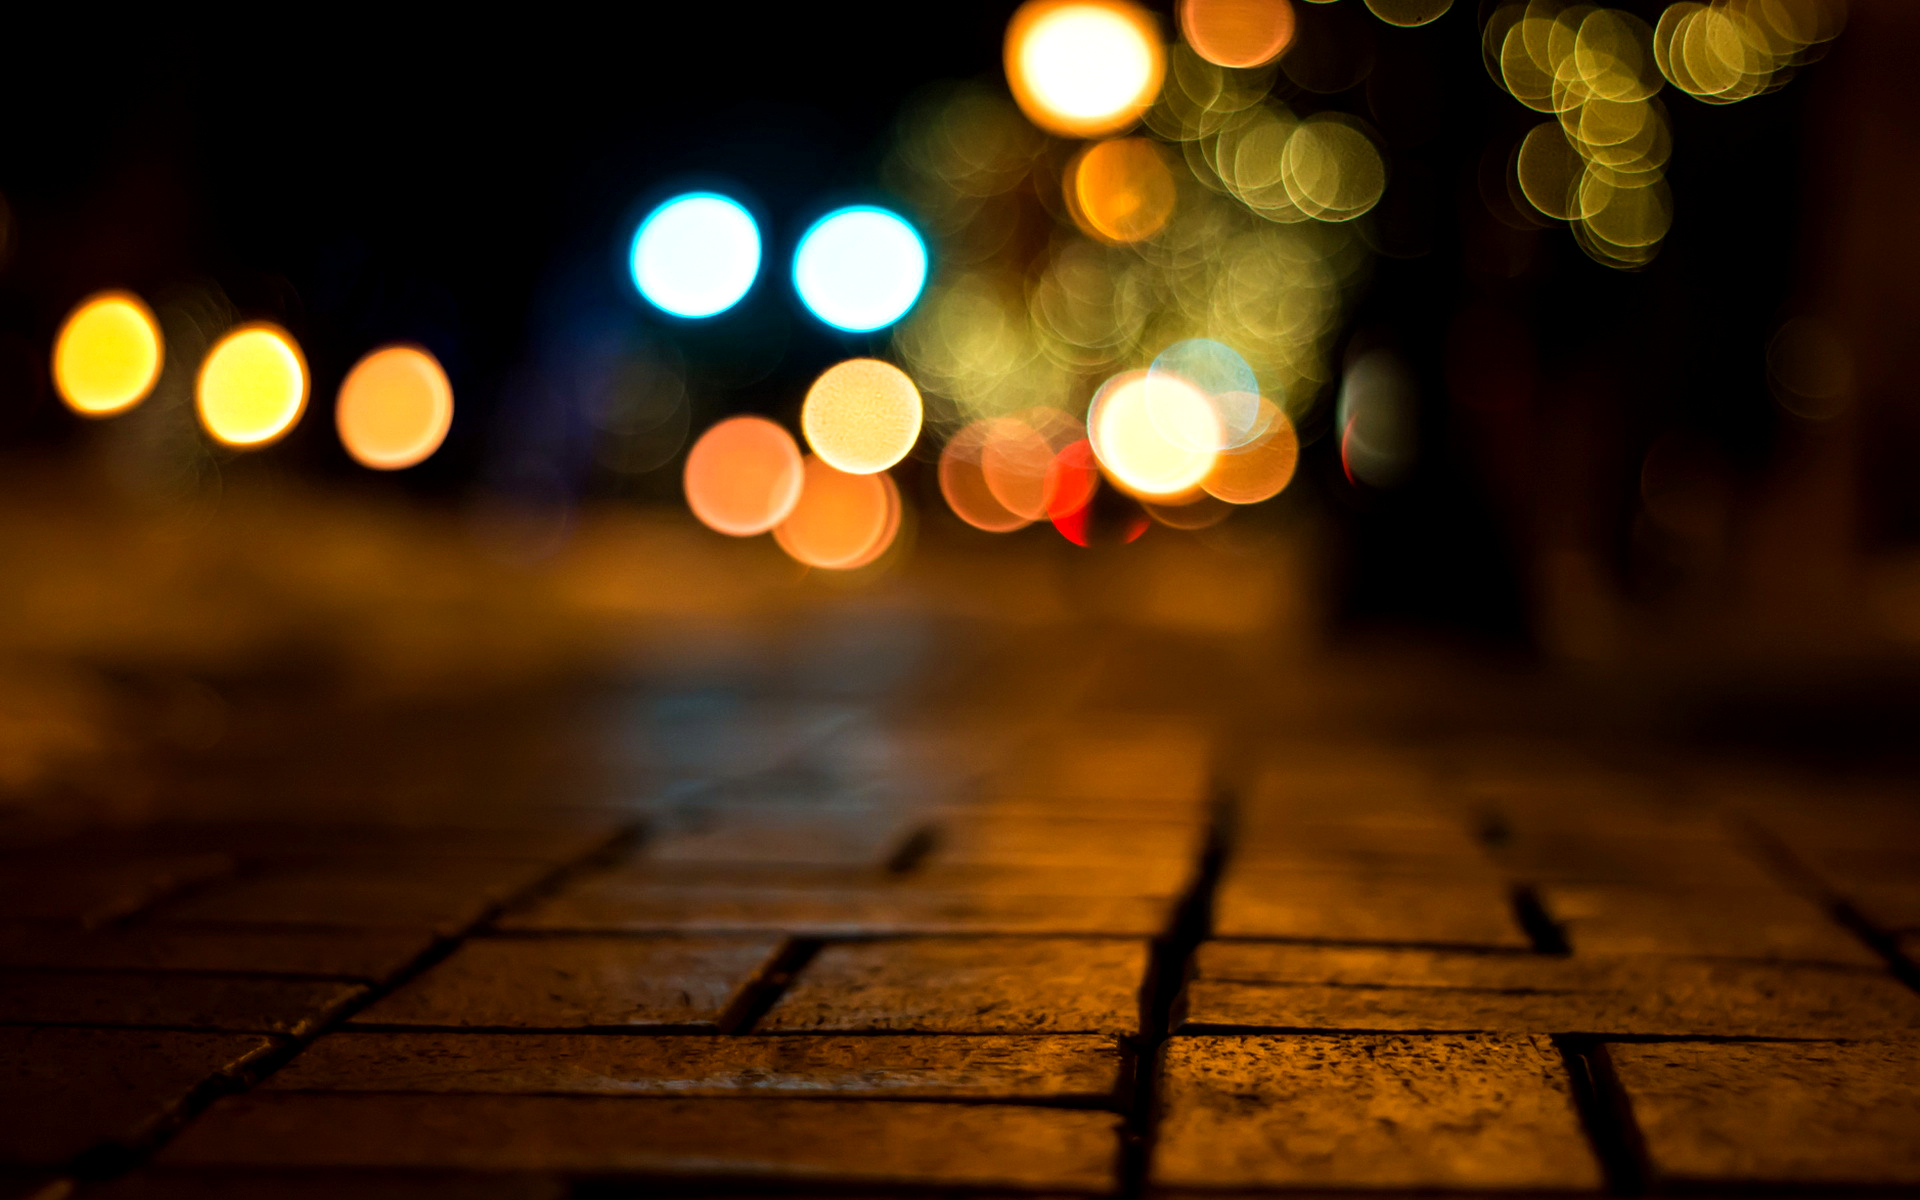 wallpaper.wiki-Street-View-Bokeh-Wallpaper-PIC-WPC002886